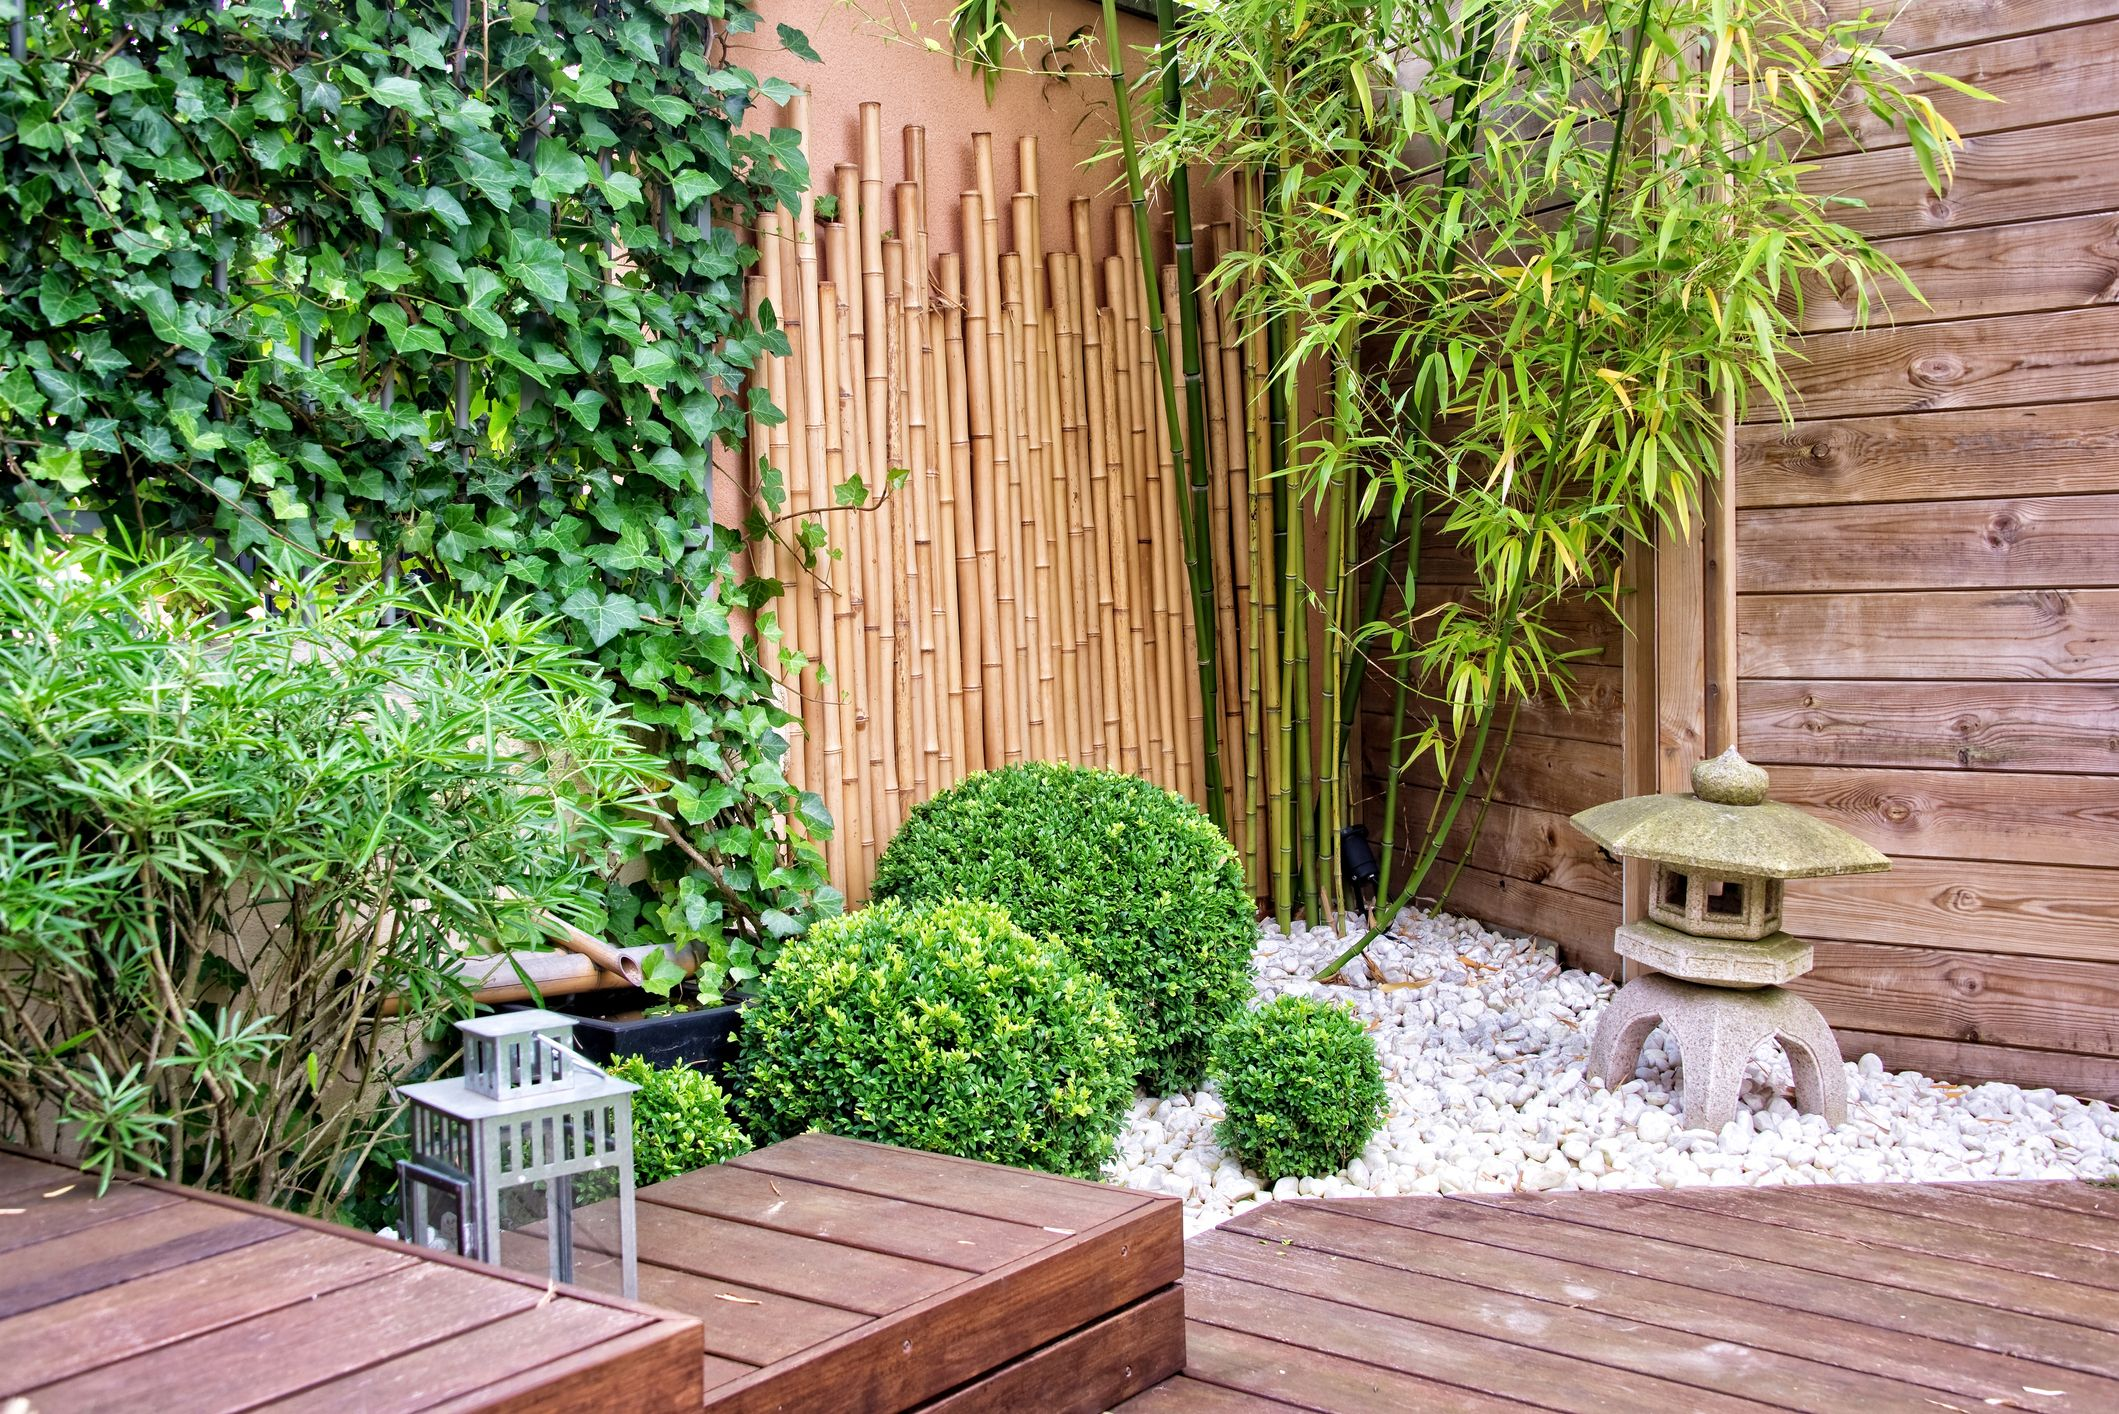 3 Simple Tricks When Designing Small Gardens